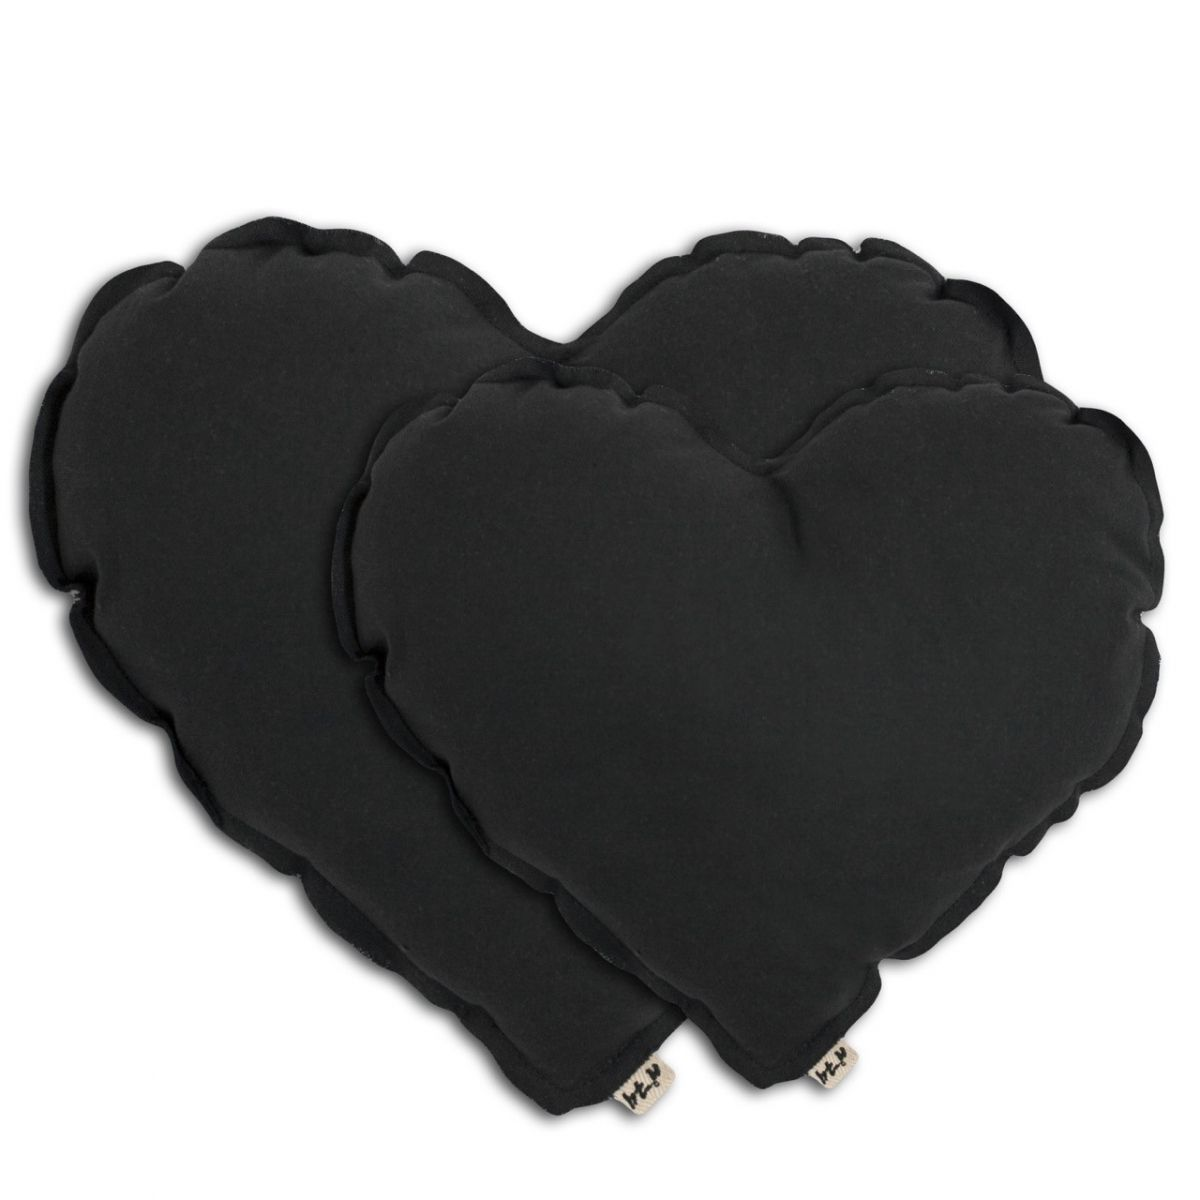 Heart cushion dark grey